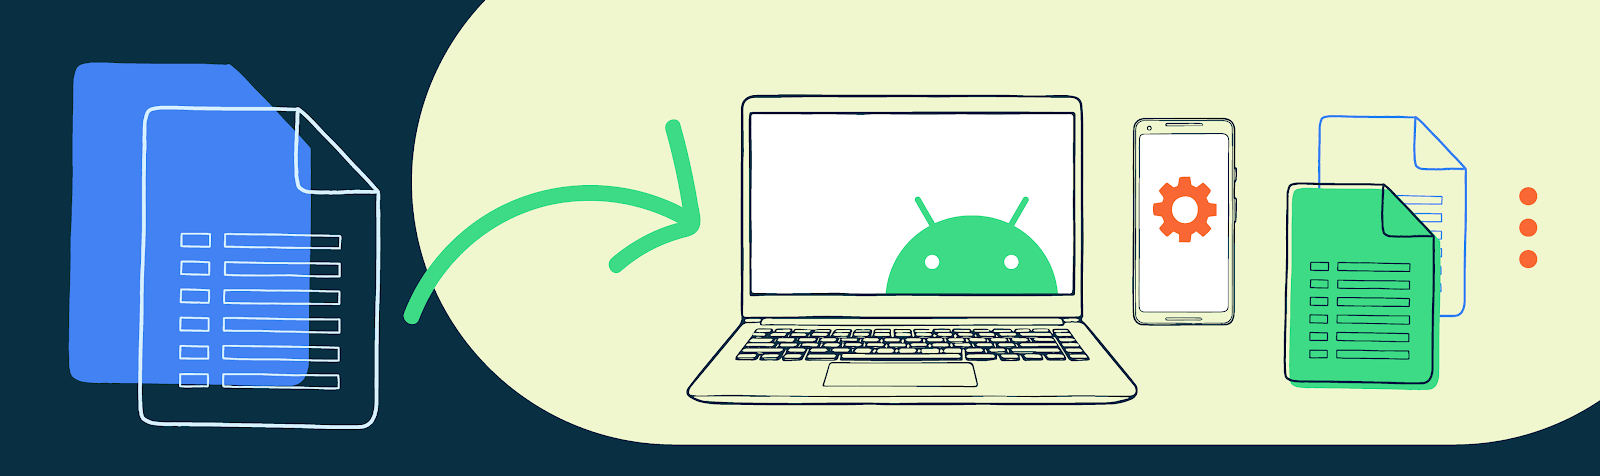 Illustration of a laptop with the Android on the screen and other tech objects in the background.